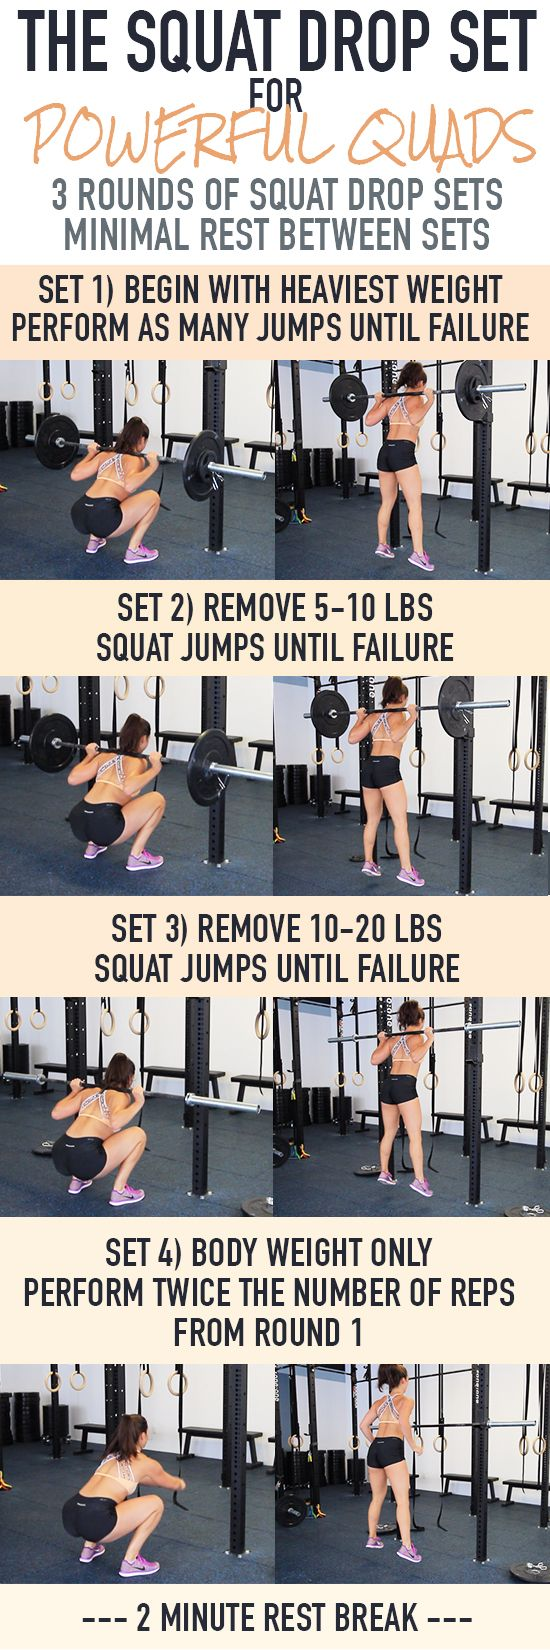 The Squat Drop Set for Powerful Quads! I love this workout and my legs are sore for two days after. Perform reps until failure for each set, dropping 5-20 lbs each time. Finish off with body weight squat jumps. Repeat for 3 times total.